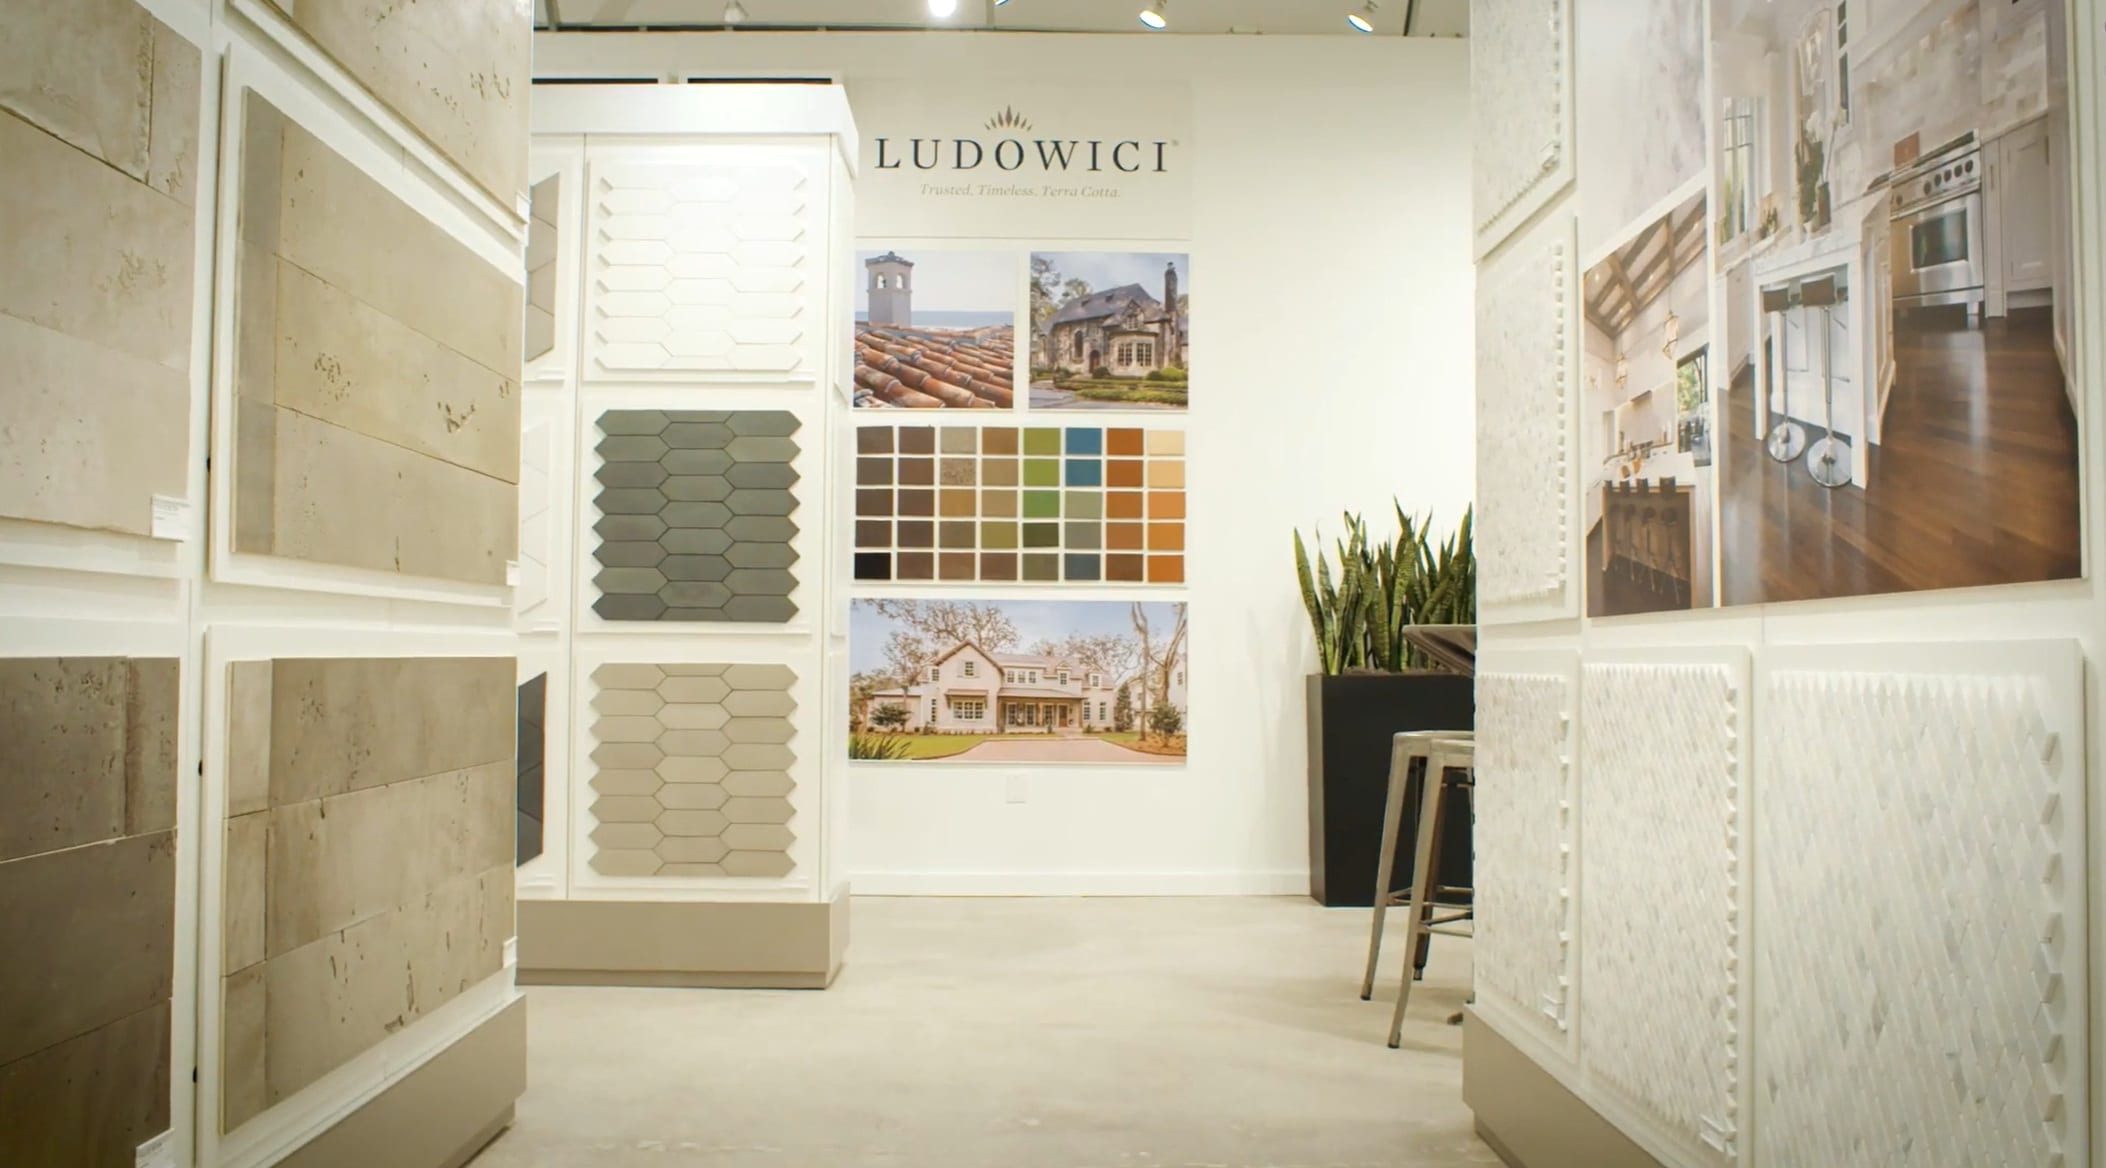 Ludowici has partnered with CIOT to include a partner wall on display in the Atlanta showroom.  This large display showcases a range of terra cotta tile profile and color options.